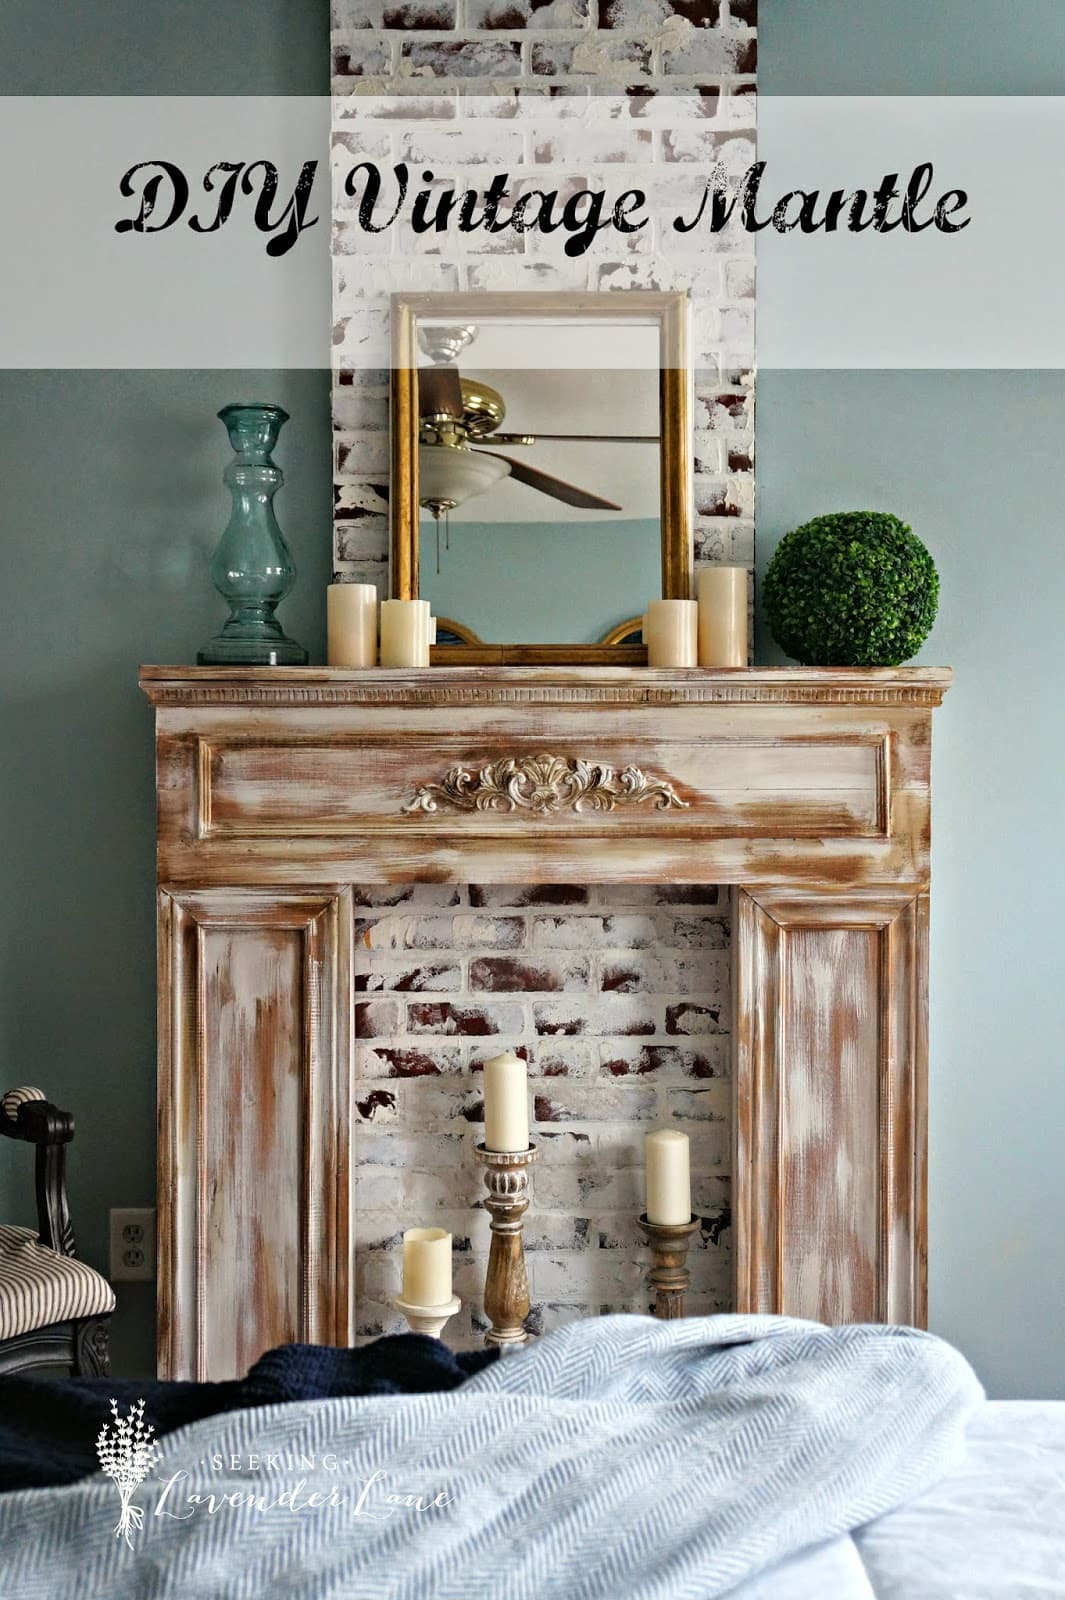 Bedroom Mantle with Label